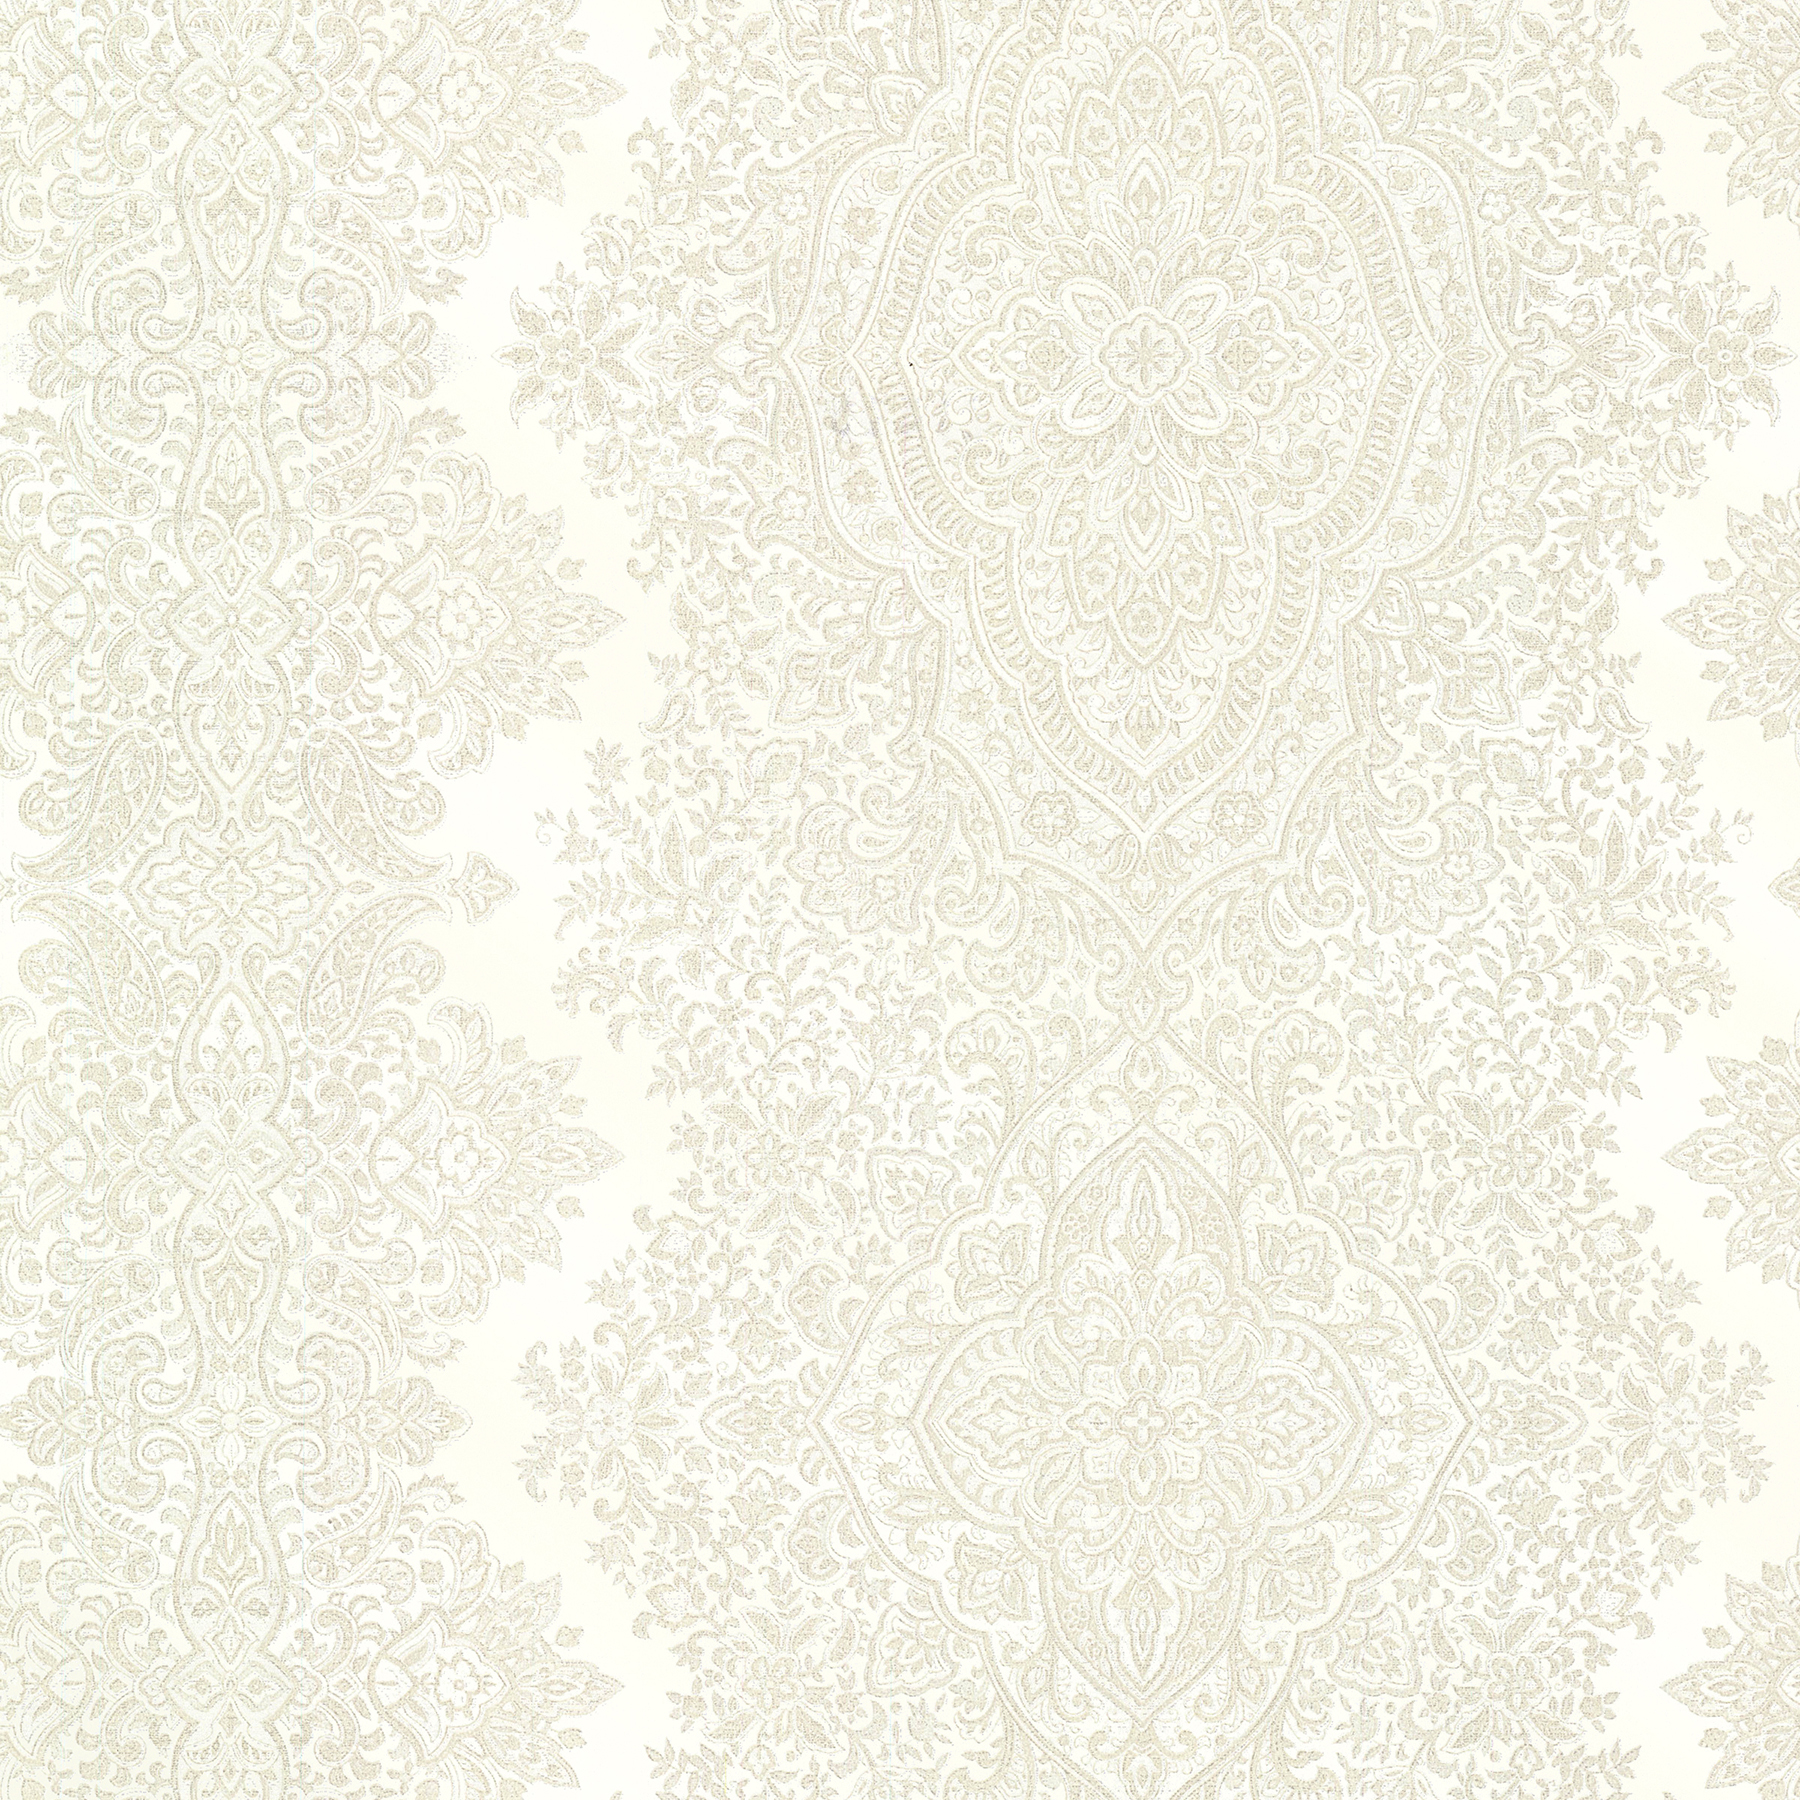 Brewster 2665-21431 Avalon Benedict Cream Ornate Paisley Stripe Wallpaper